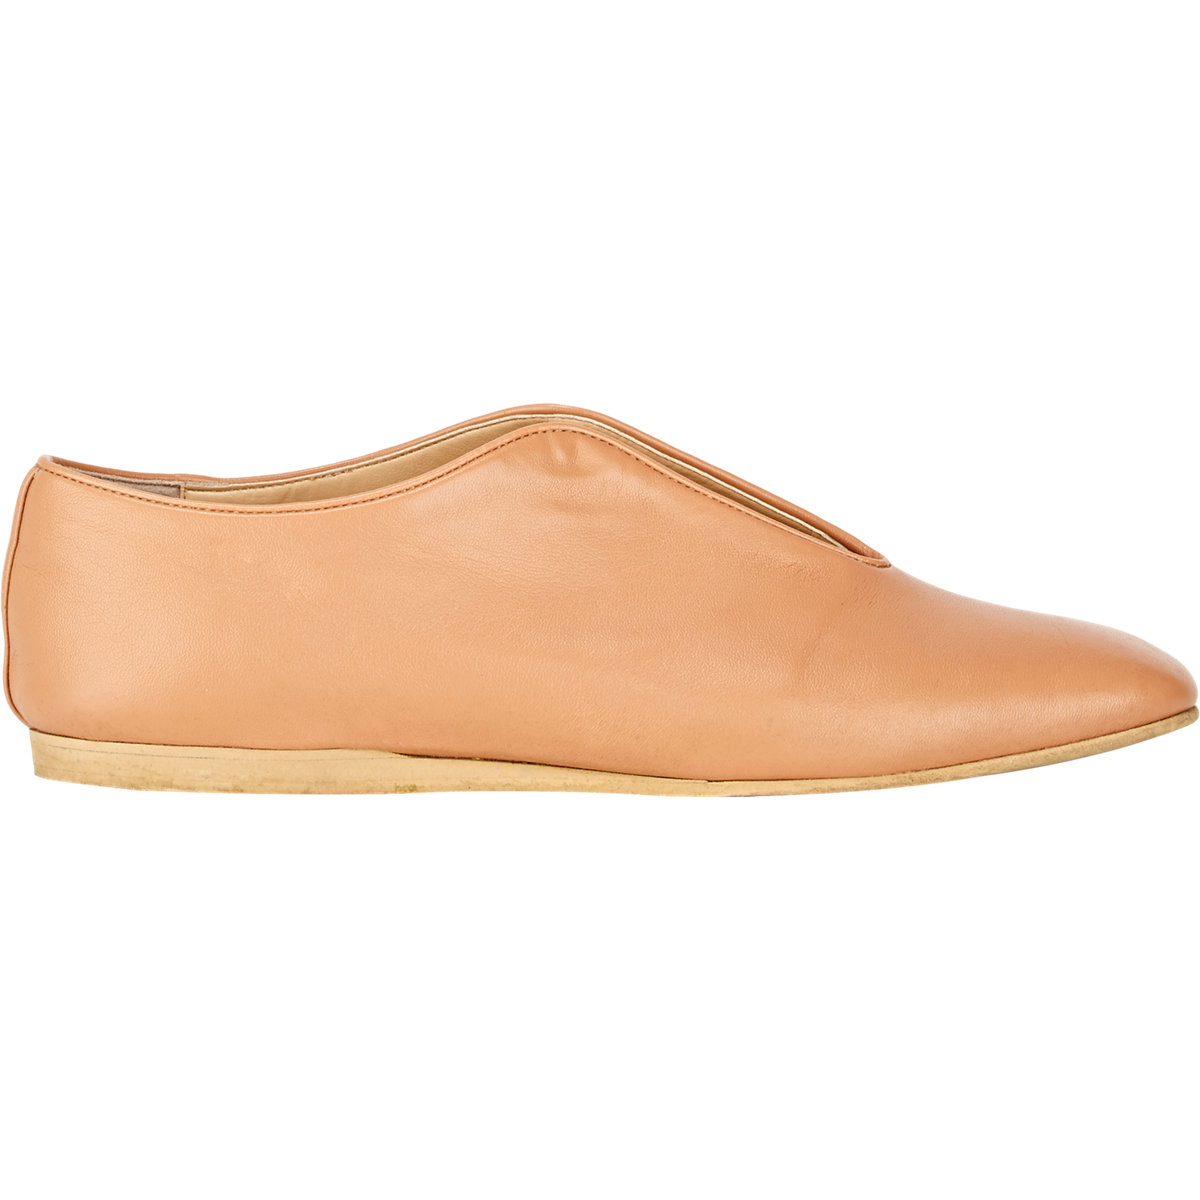 Stella McCartney Vegan Suede Flats